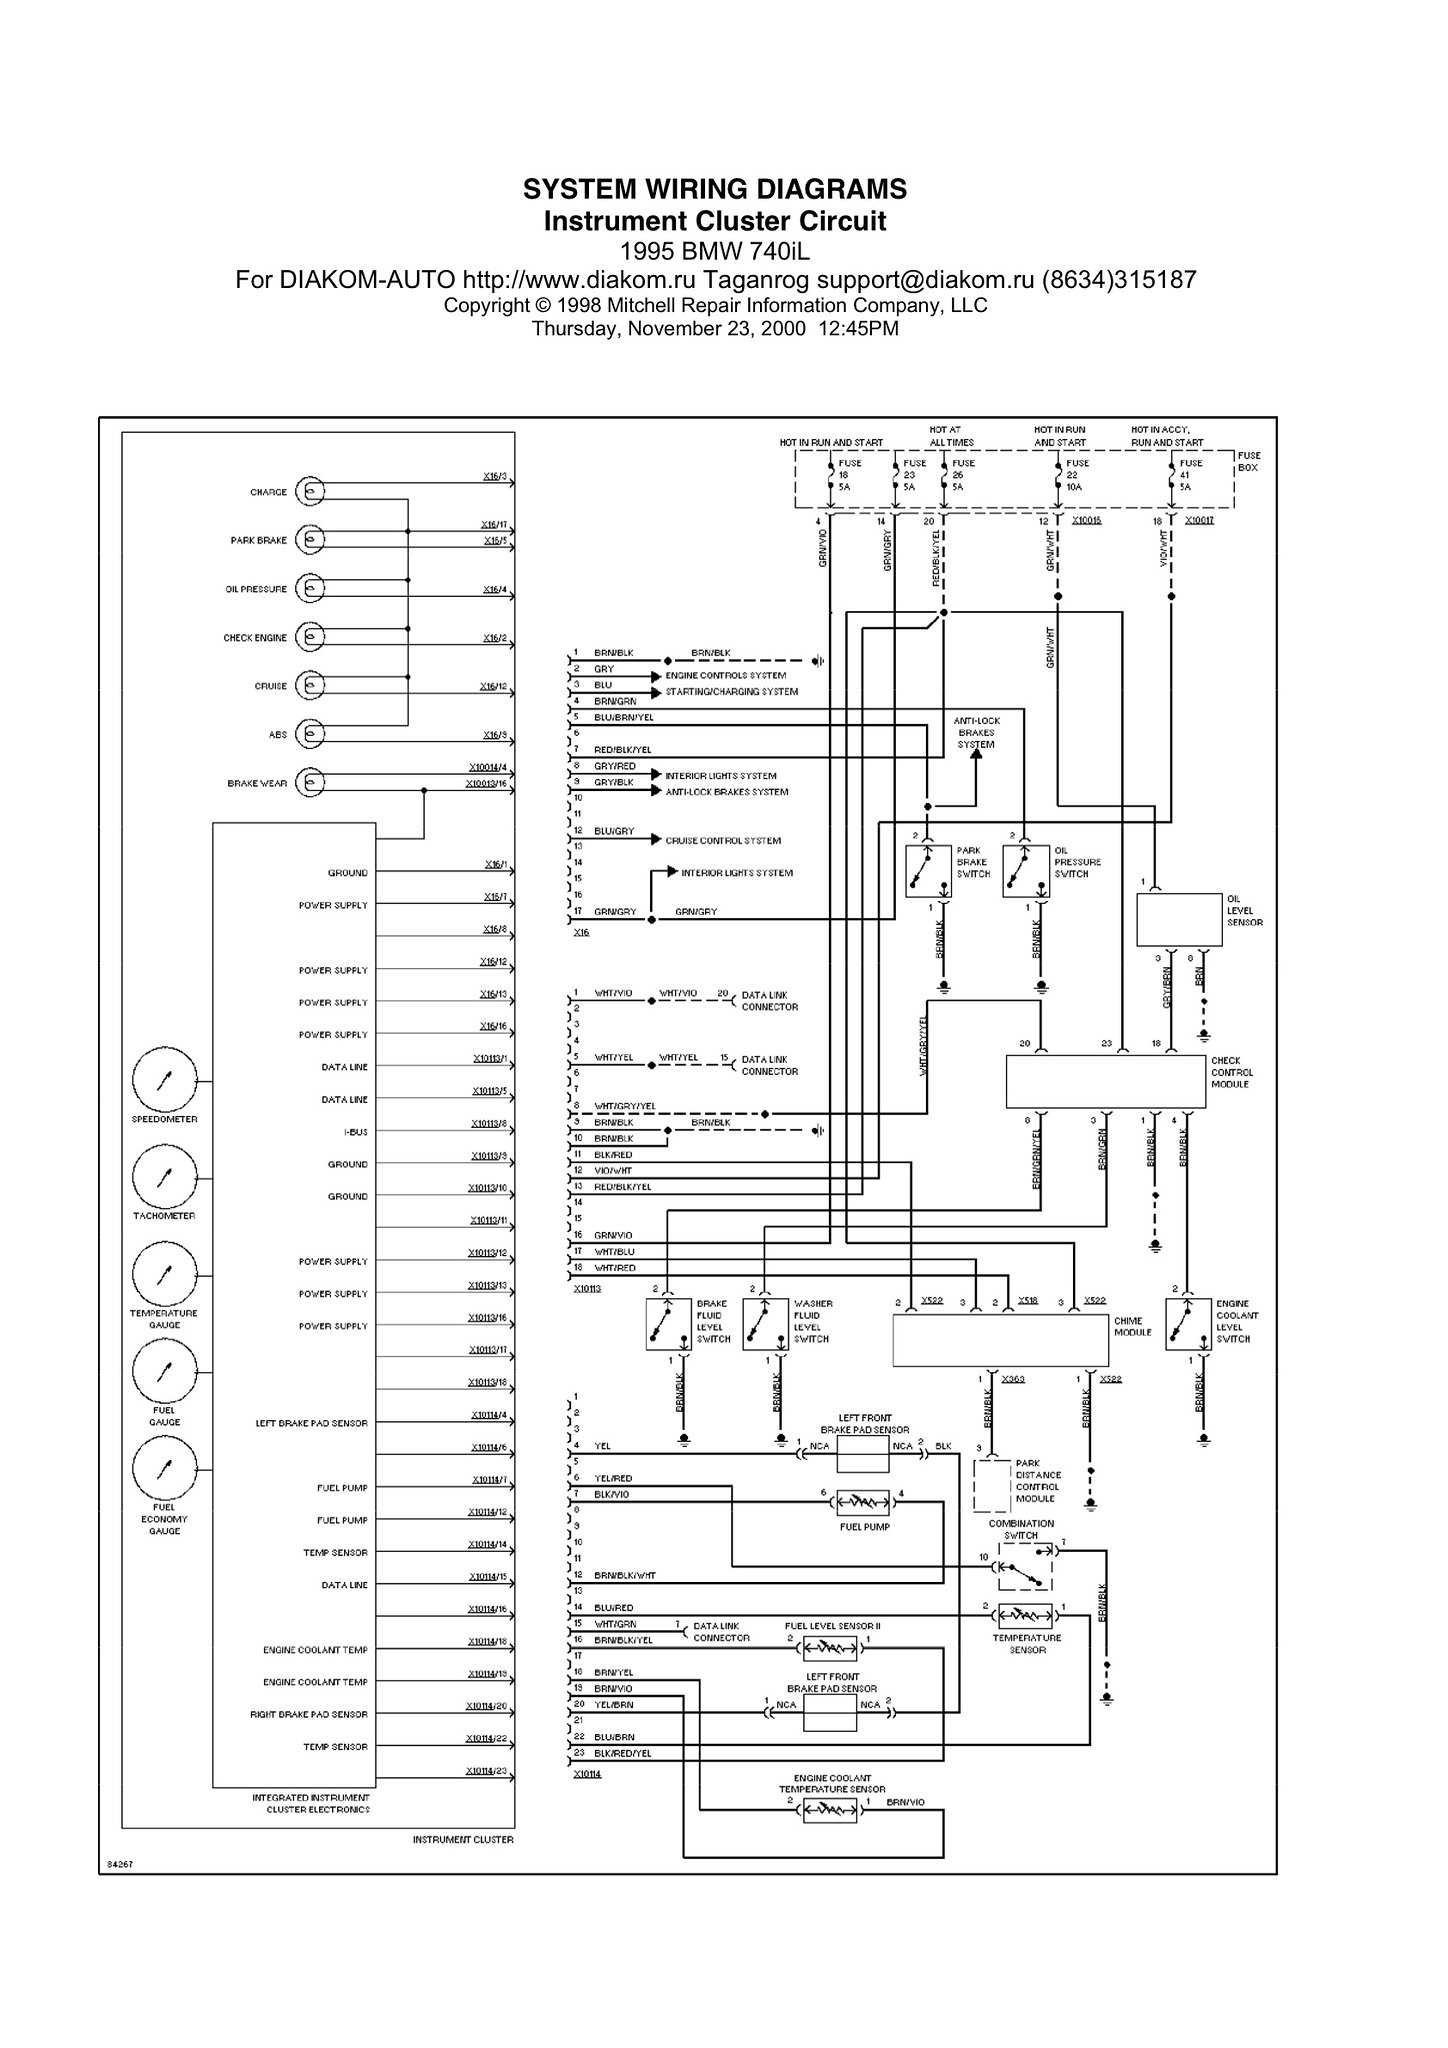 7703585142_dbc4ceb414_k bmw e39 wiring diagrams 1998 740i heated seat wiring diagram 2004 bmw 530i wiring diagrams at bayanpartner.co